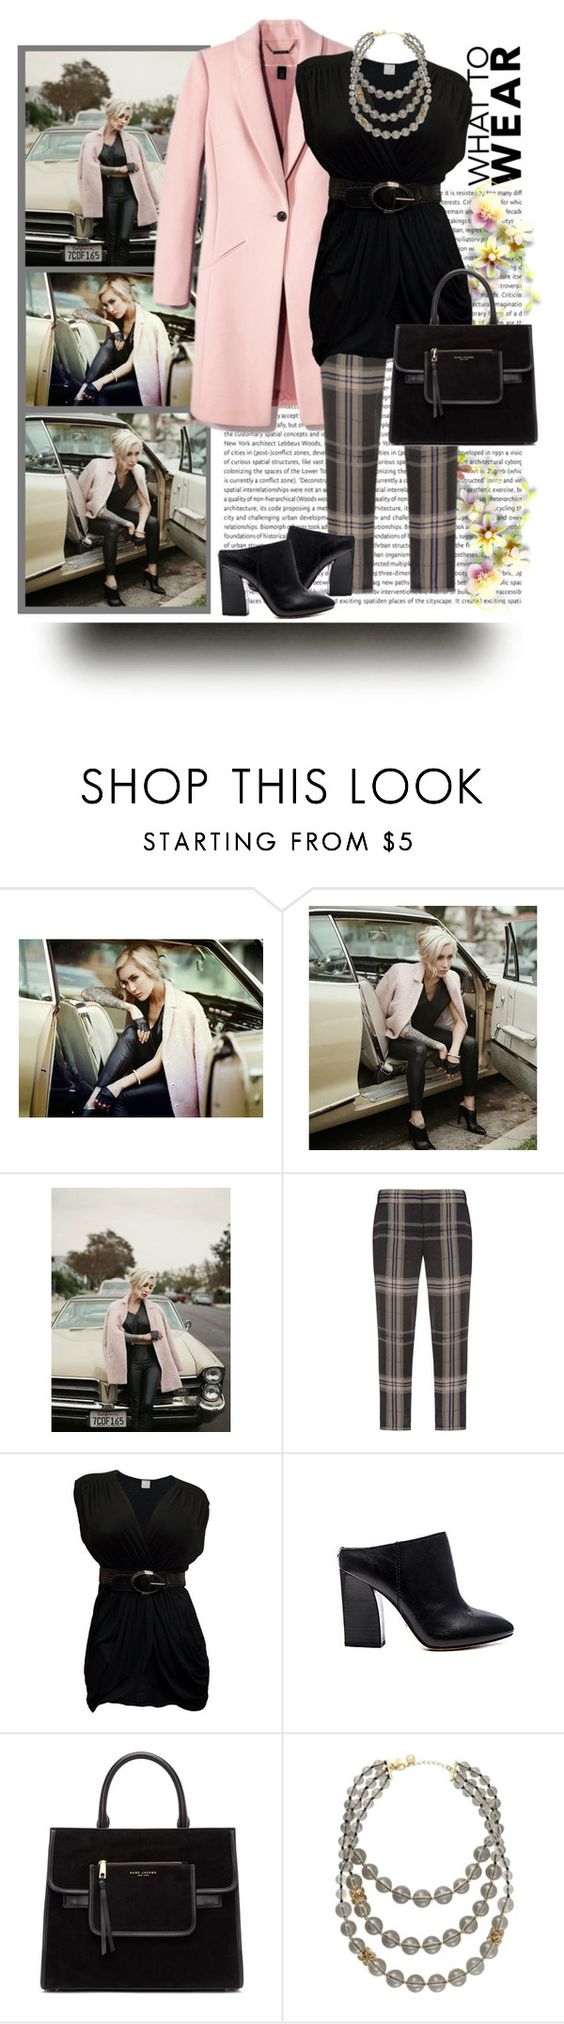 """Vera Wang Plaid Print Silk Pants"" by ldumperth ❤ liked on Polyvore featuring Vera Wang, Pour La Victoire, Marc Jacobs and Kate Spade"